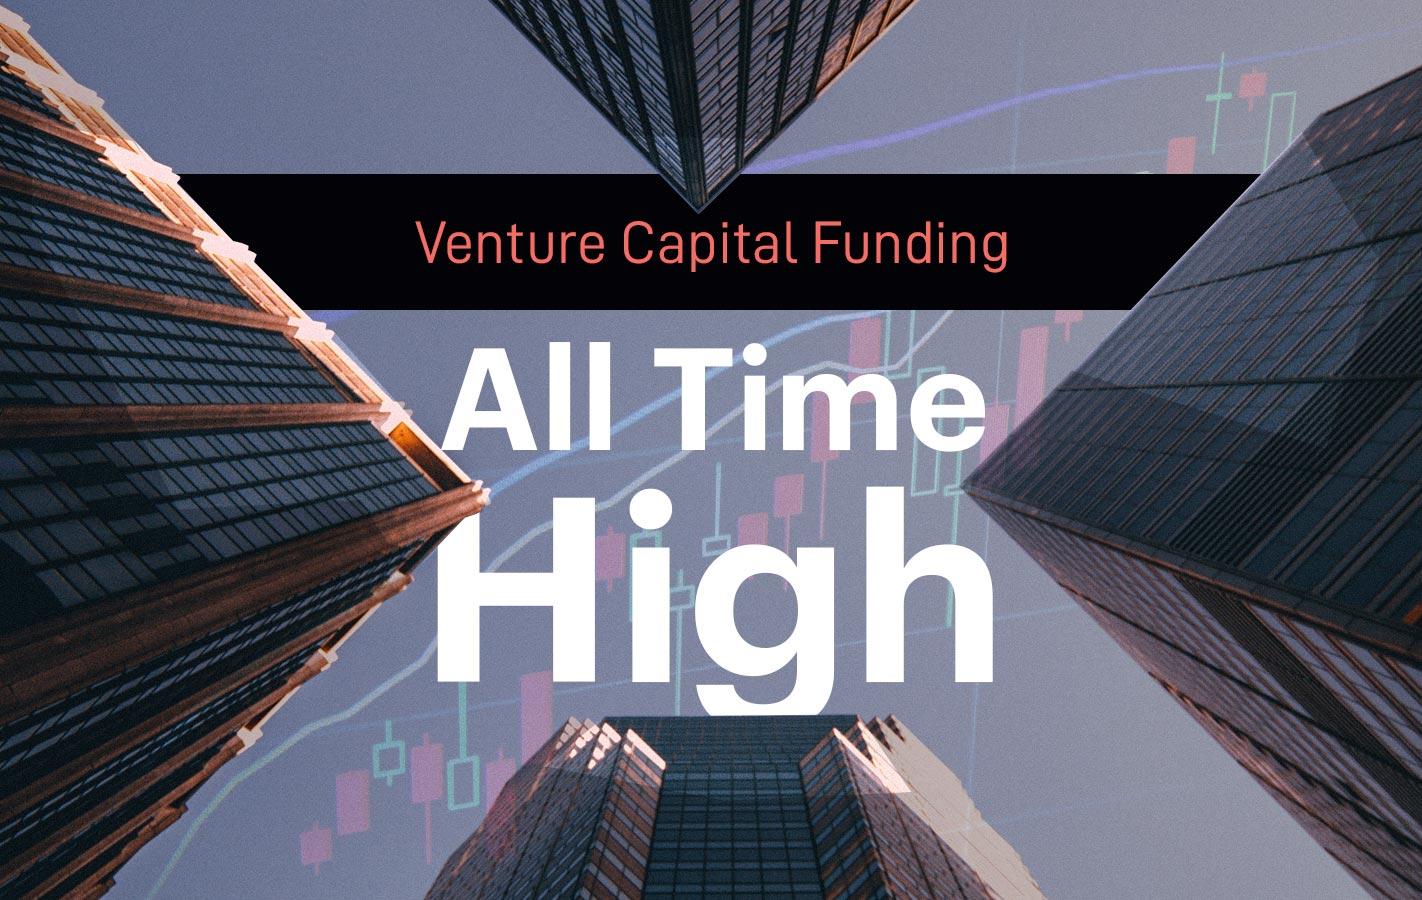 Global Venture Capital Funding All Time High